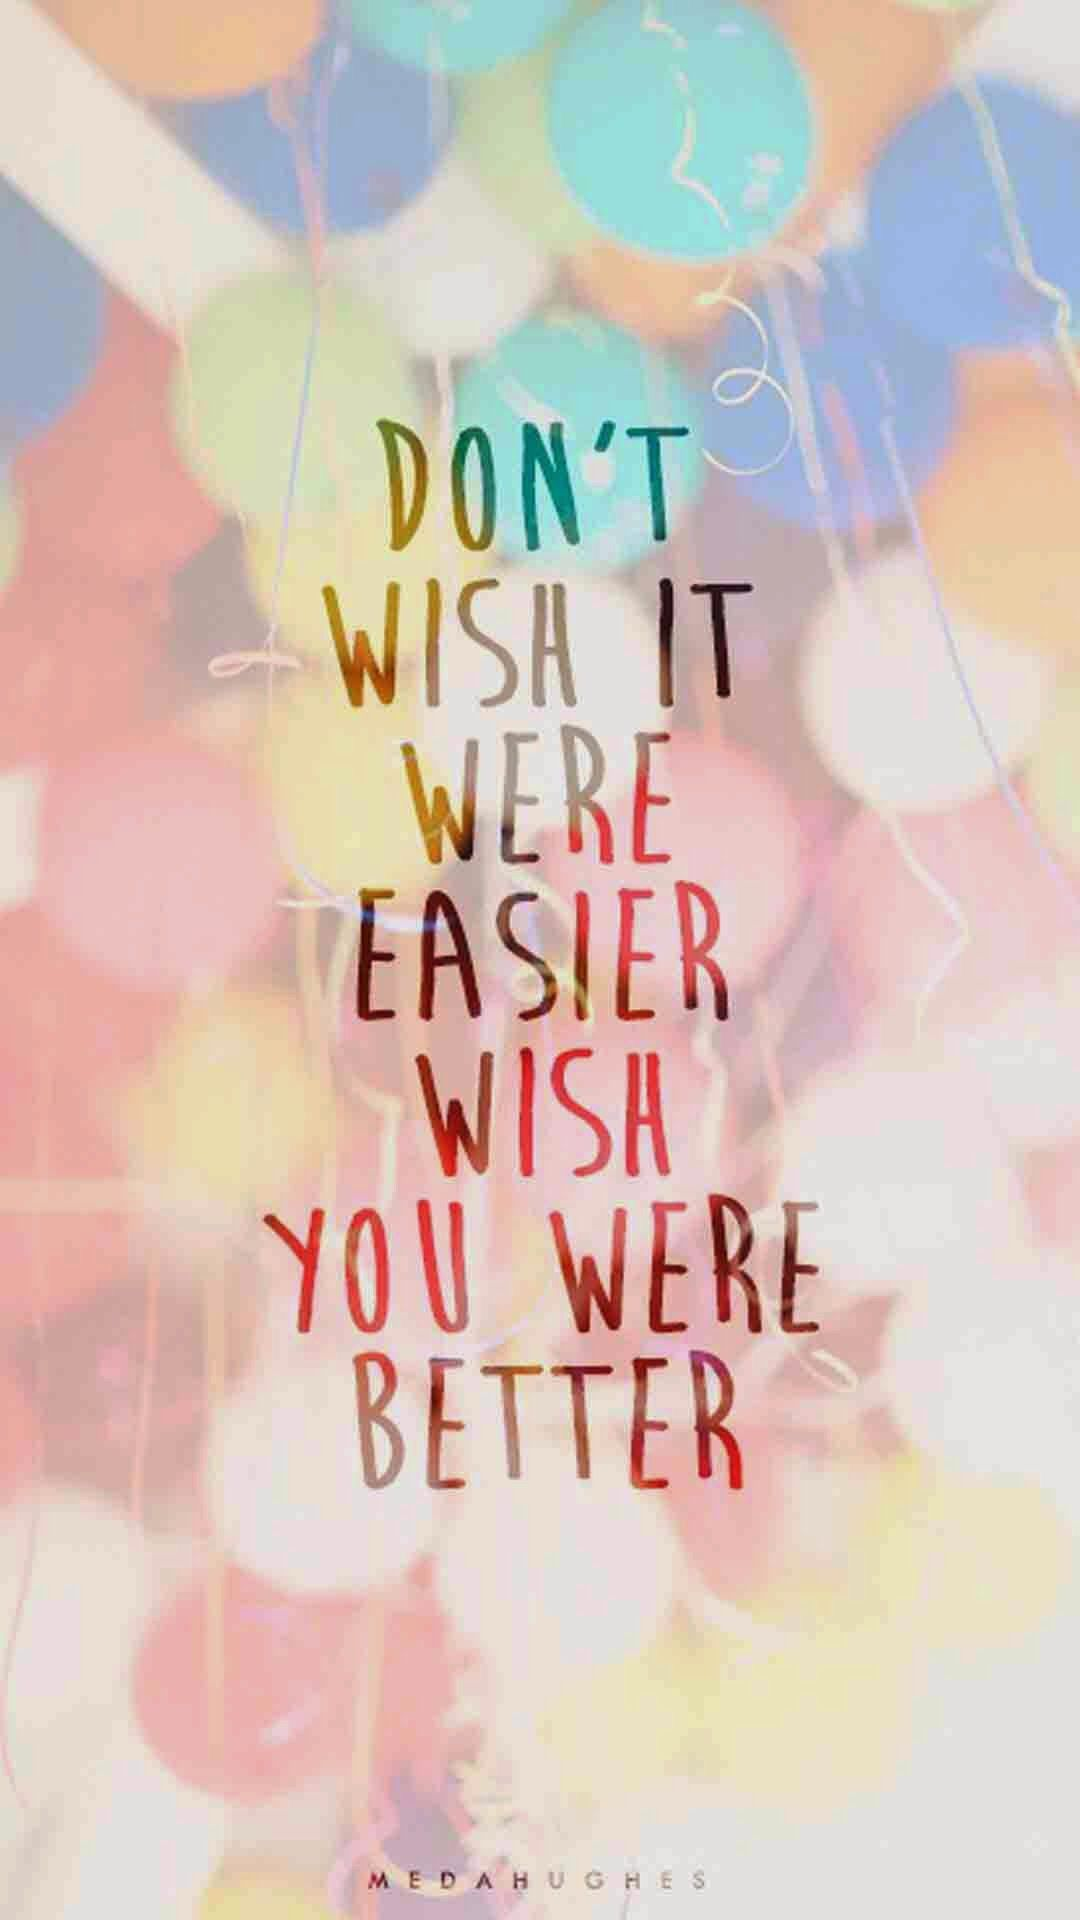 Wish You Were Better - Tap to see more beautiful ...